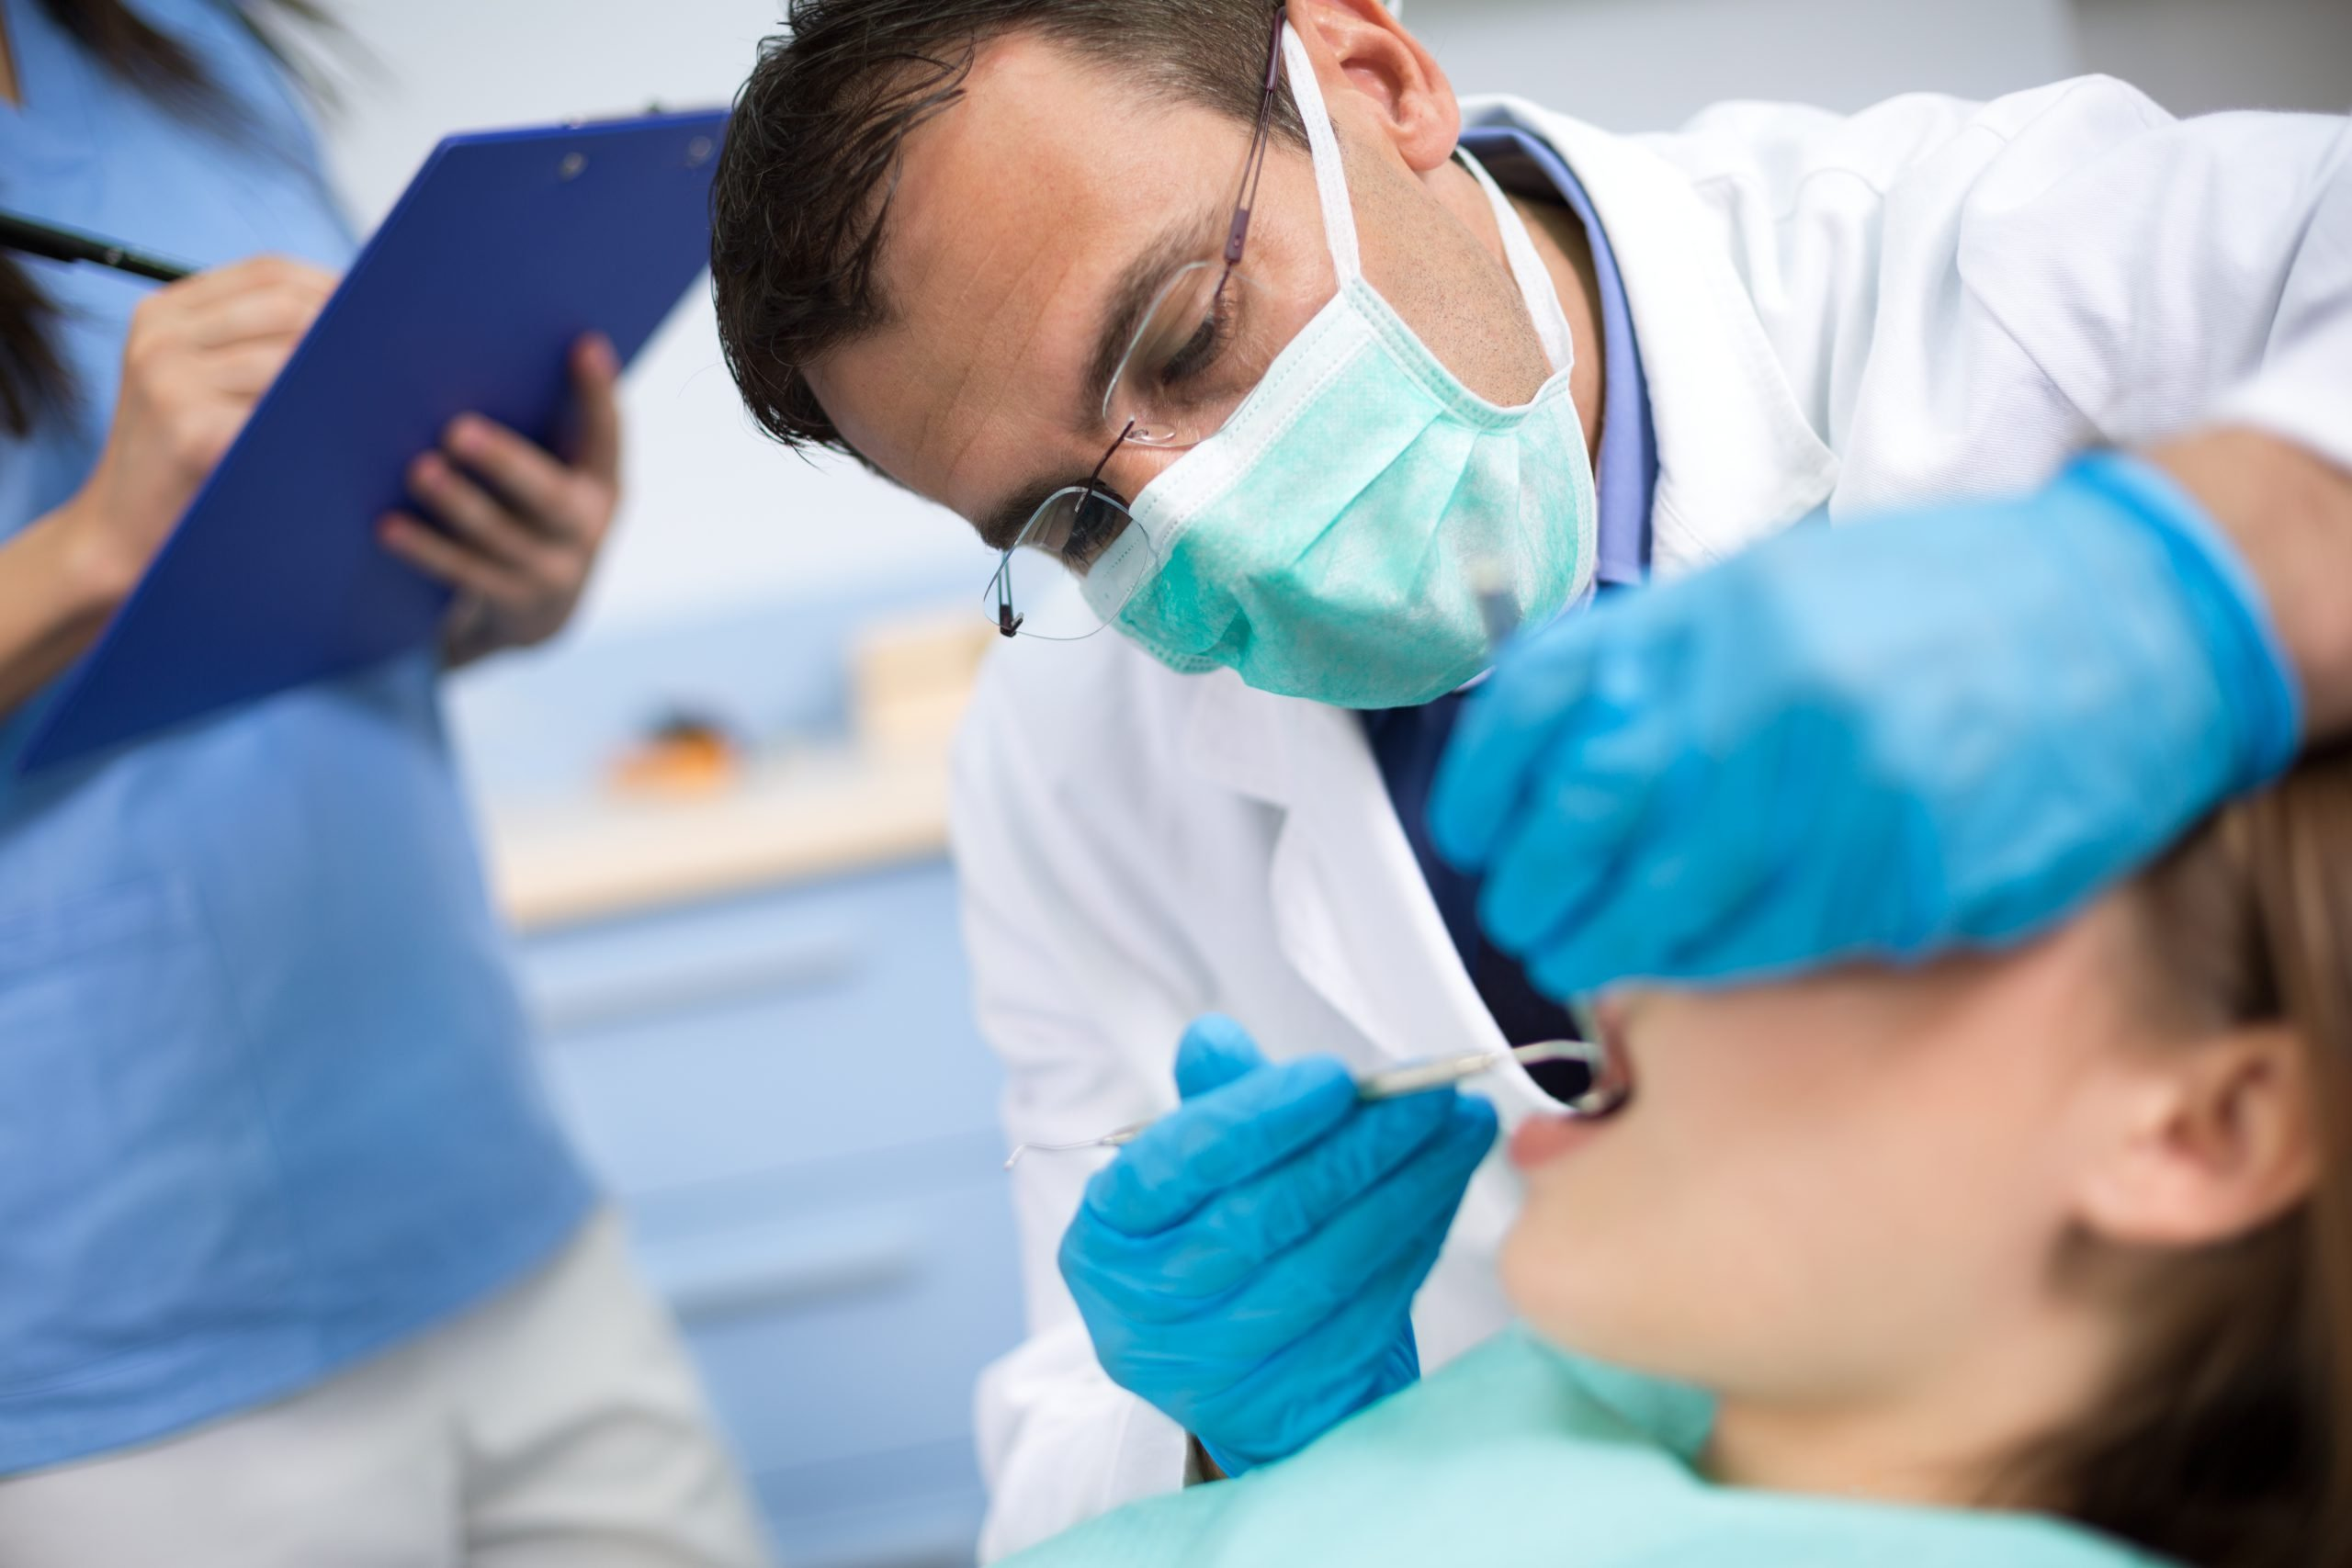 Preventative Dentist in Orange County, California